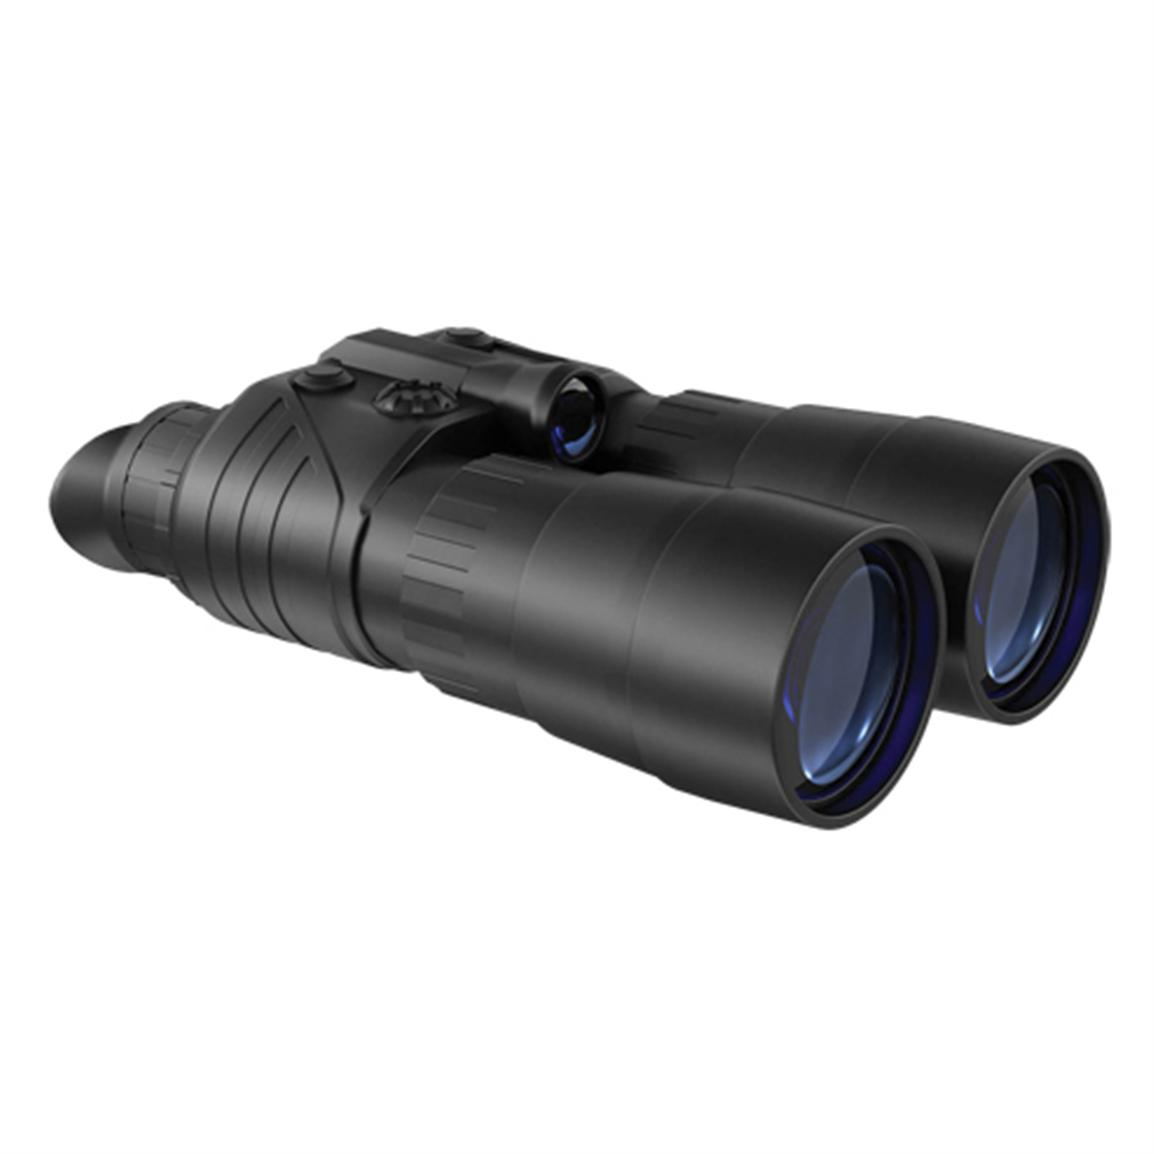 The Edge GS 2.7x50 Night Vision Binoculars by Pulsar®